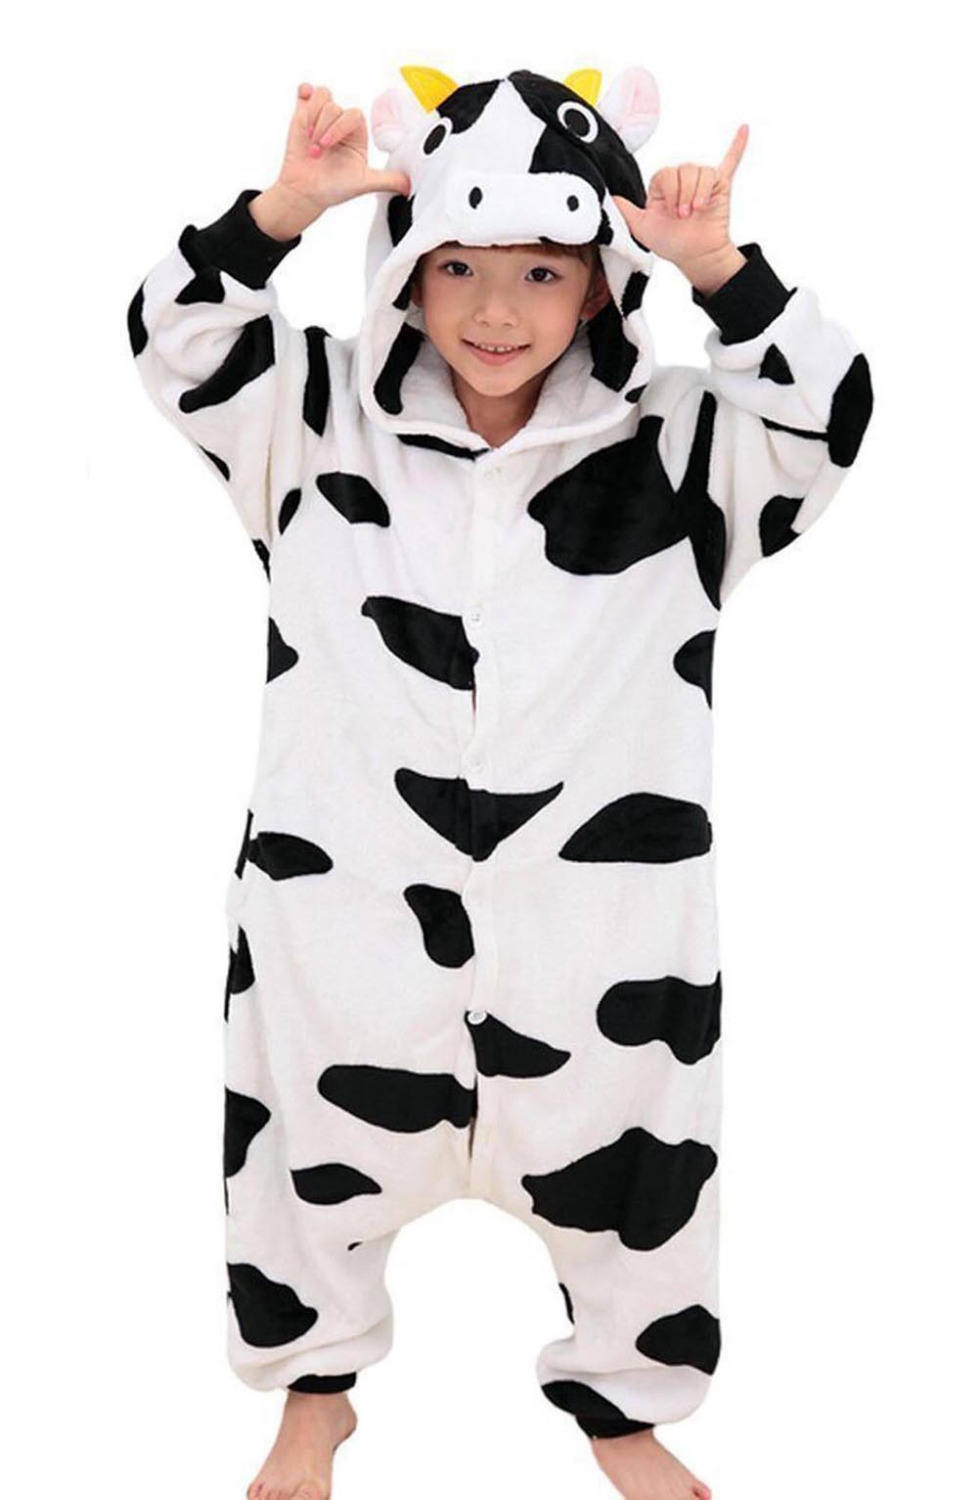 cow childrens cosplay costume for girls and boys hooded sleepsuit flannel animals kids pyjamas in one - Halloween Costume Cow